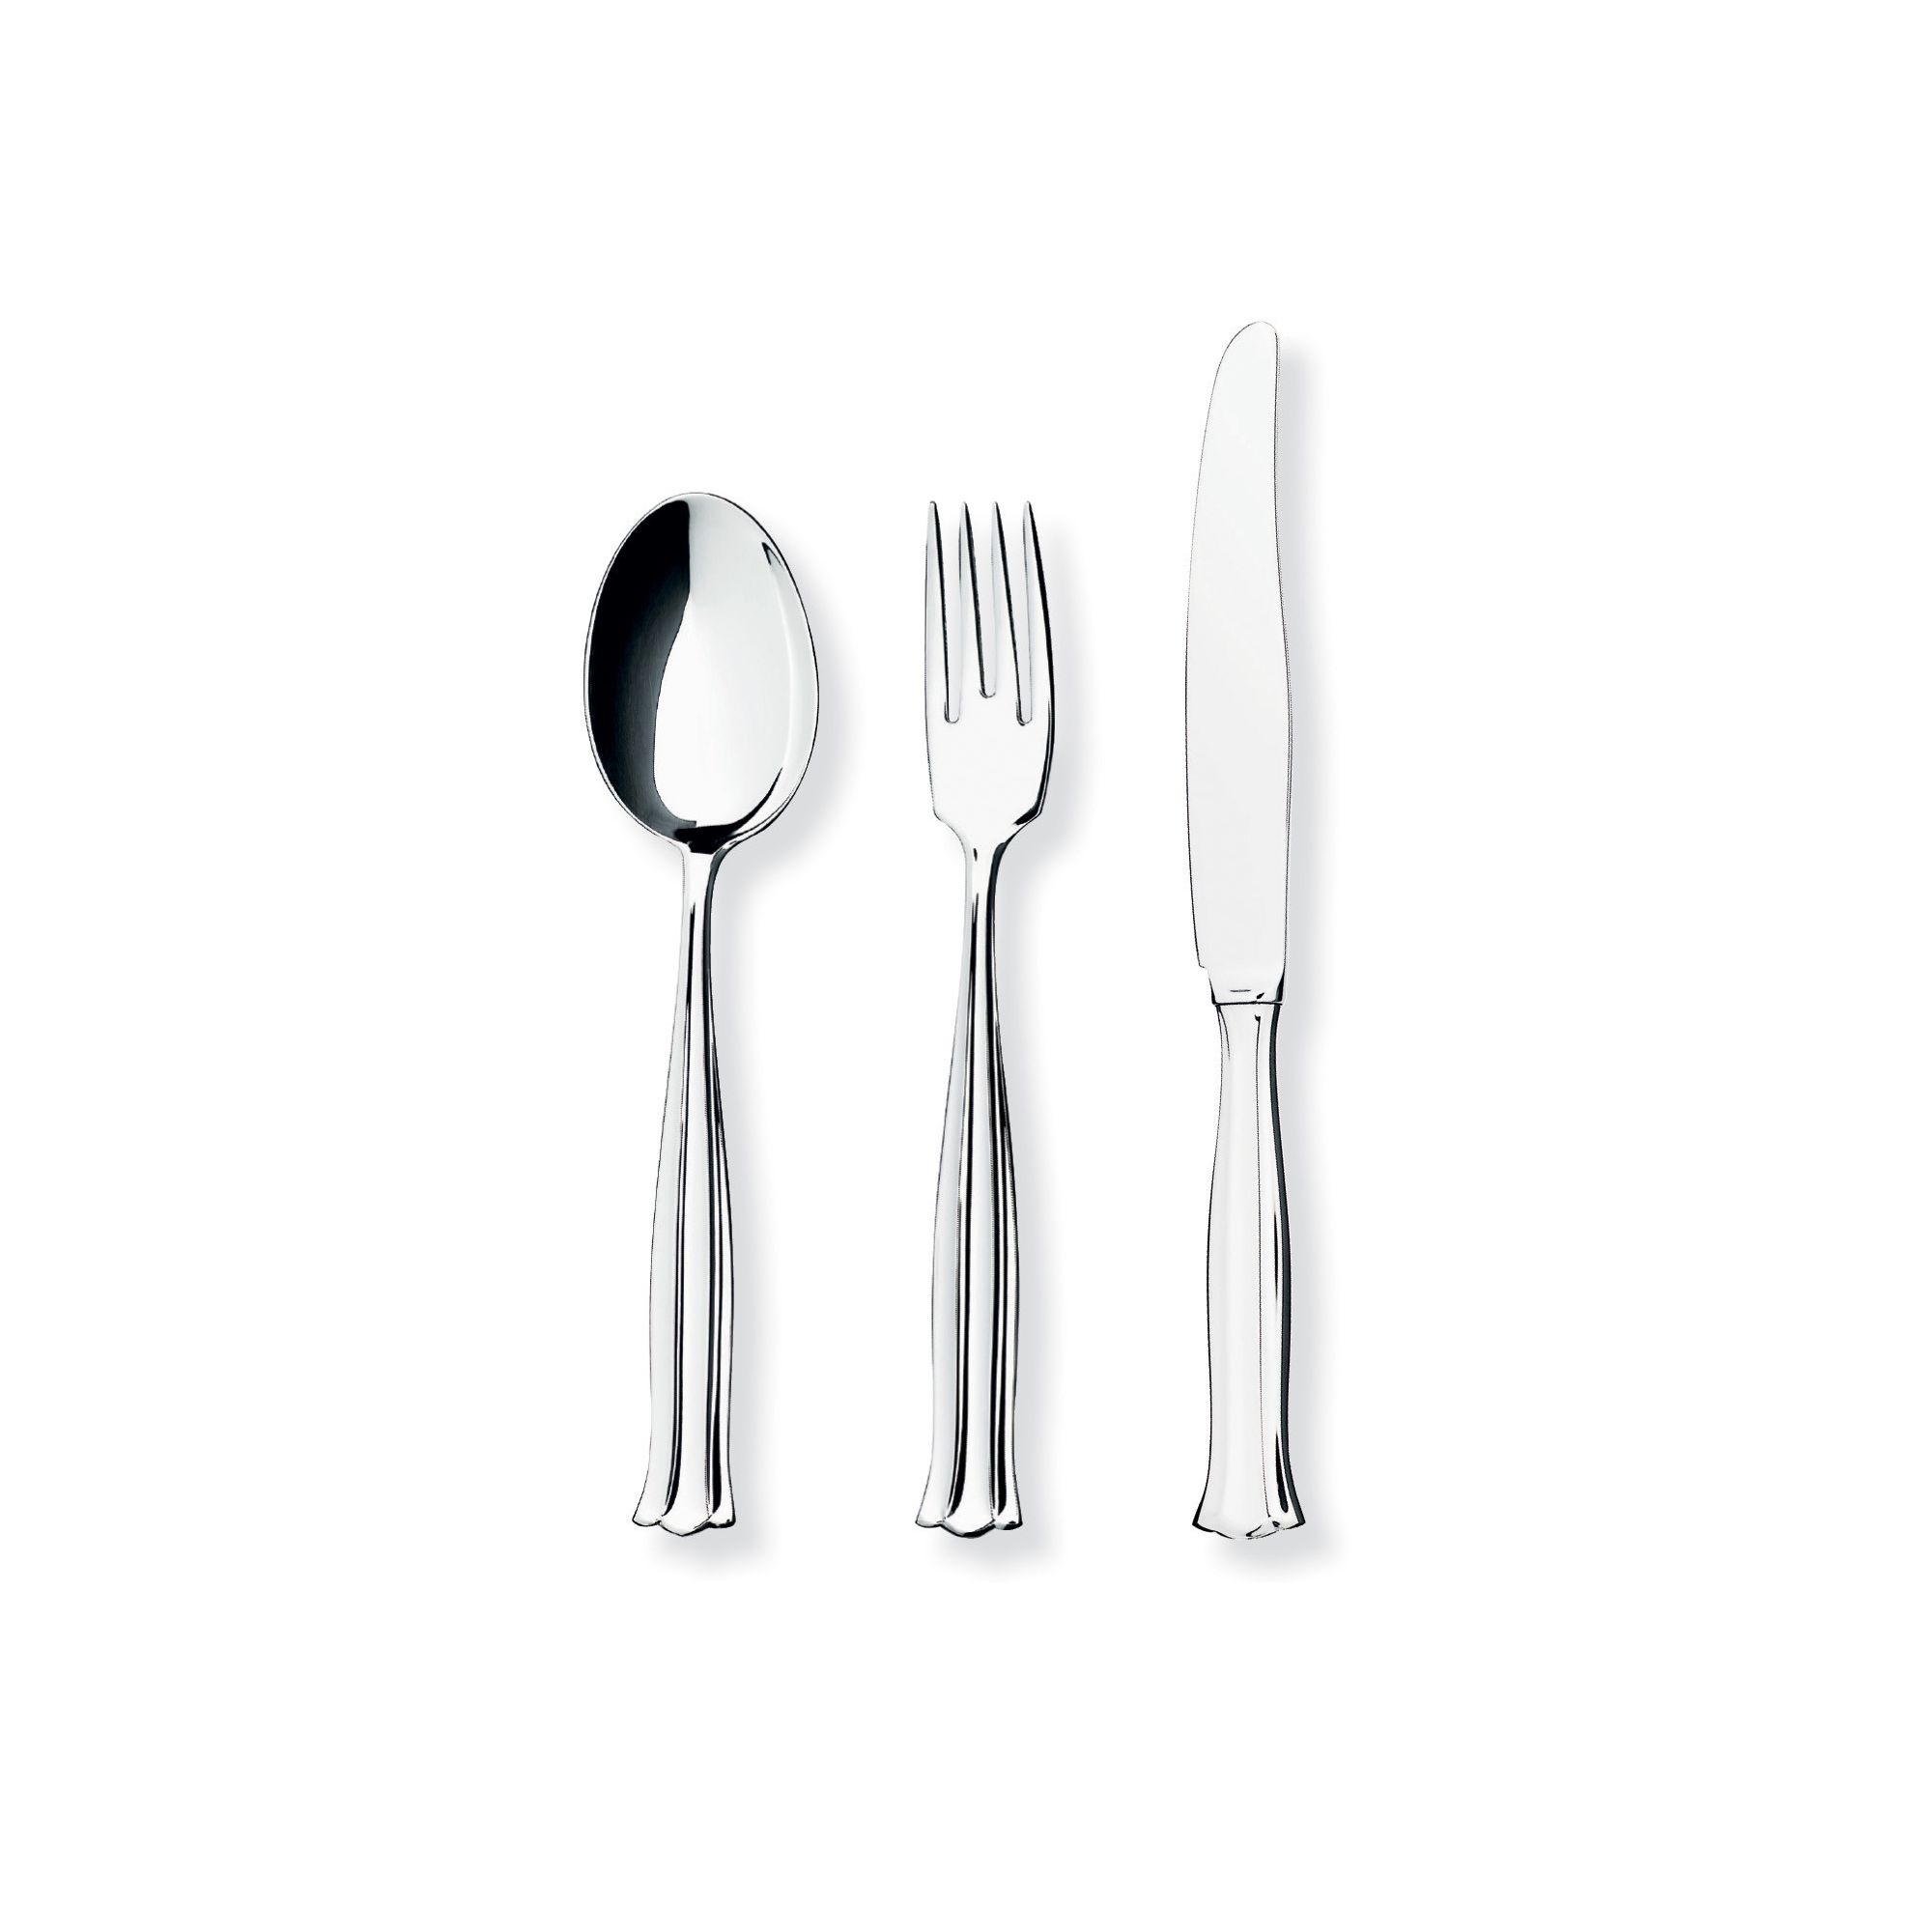 Mema/GAB Birgitta 12 Piece Silver Plated Cutlery Set 3 at Tescos Direct